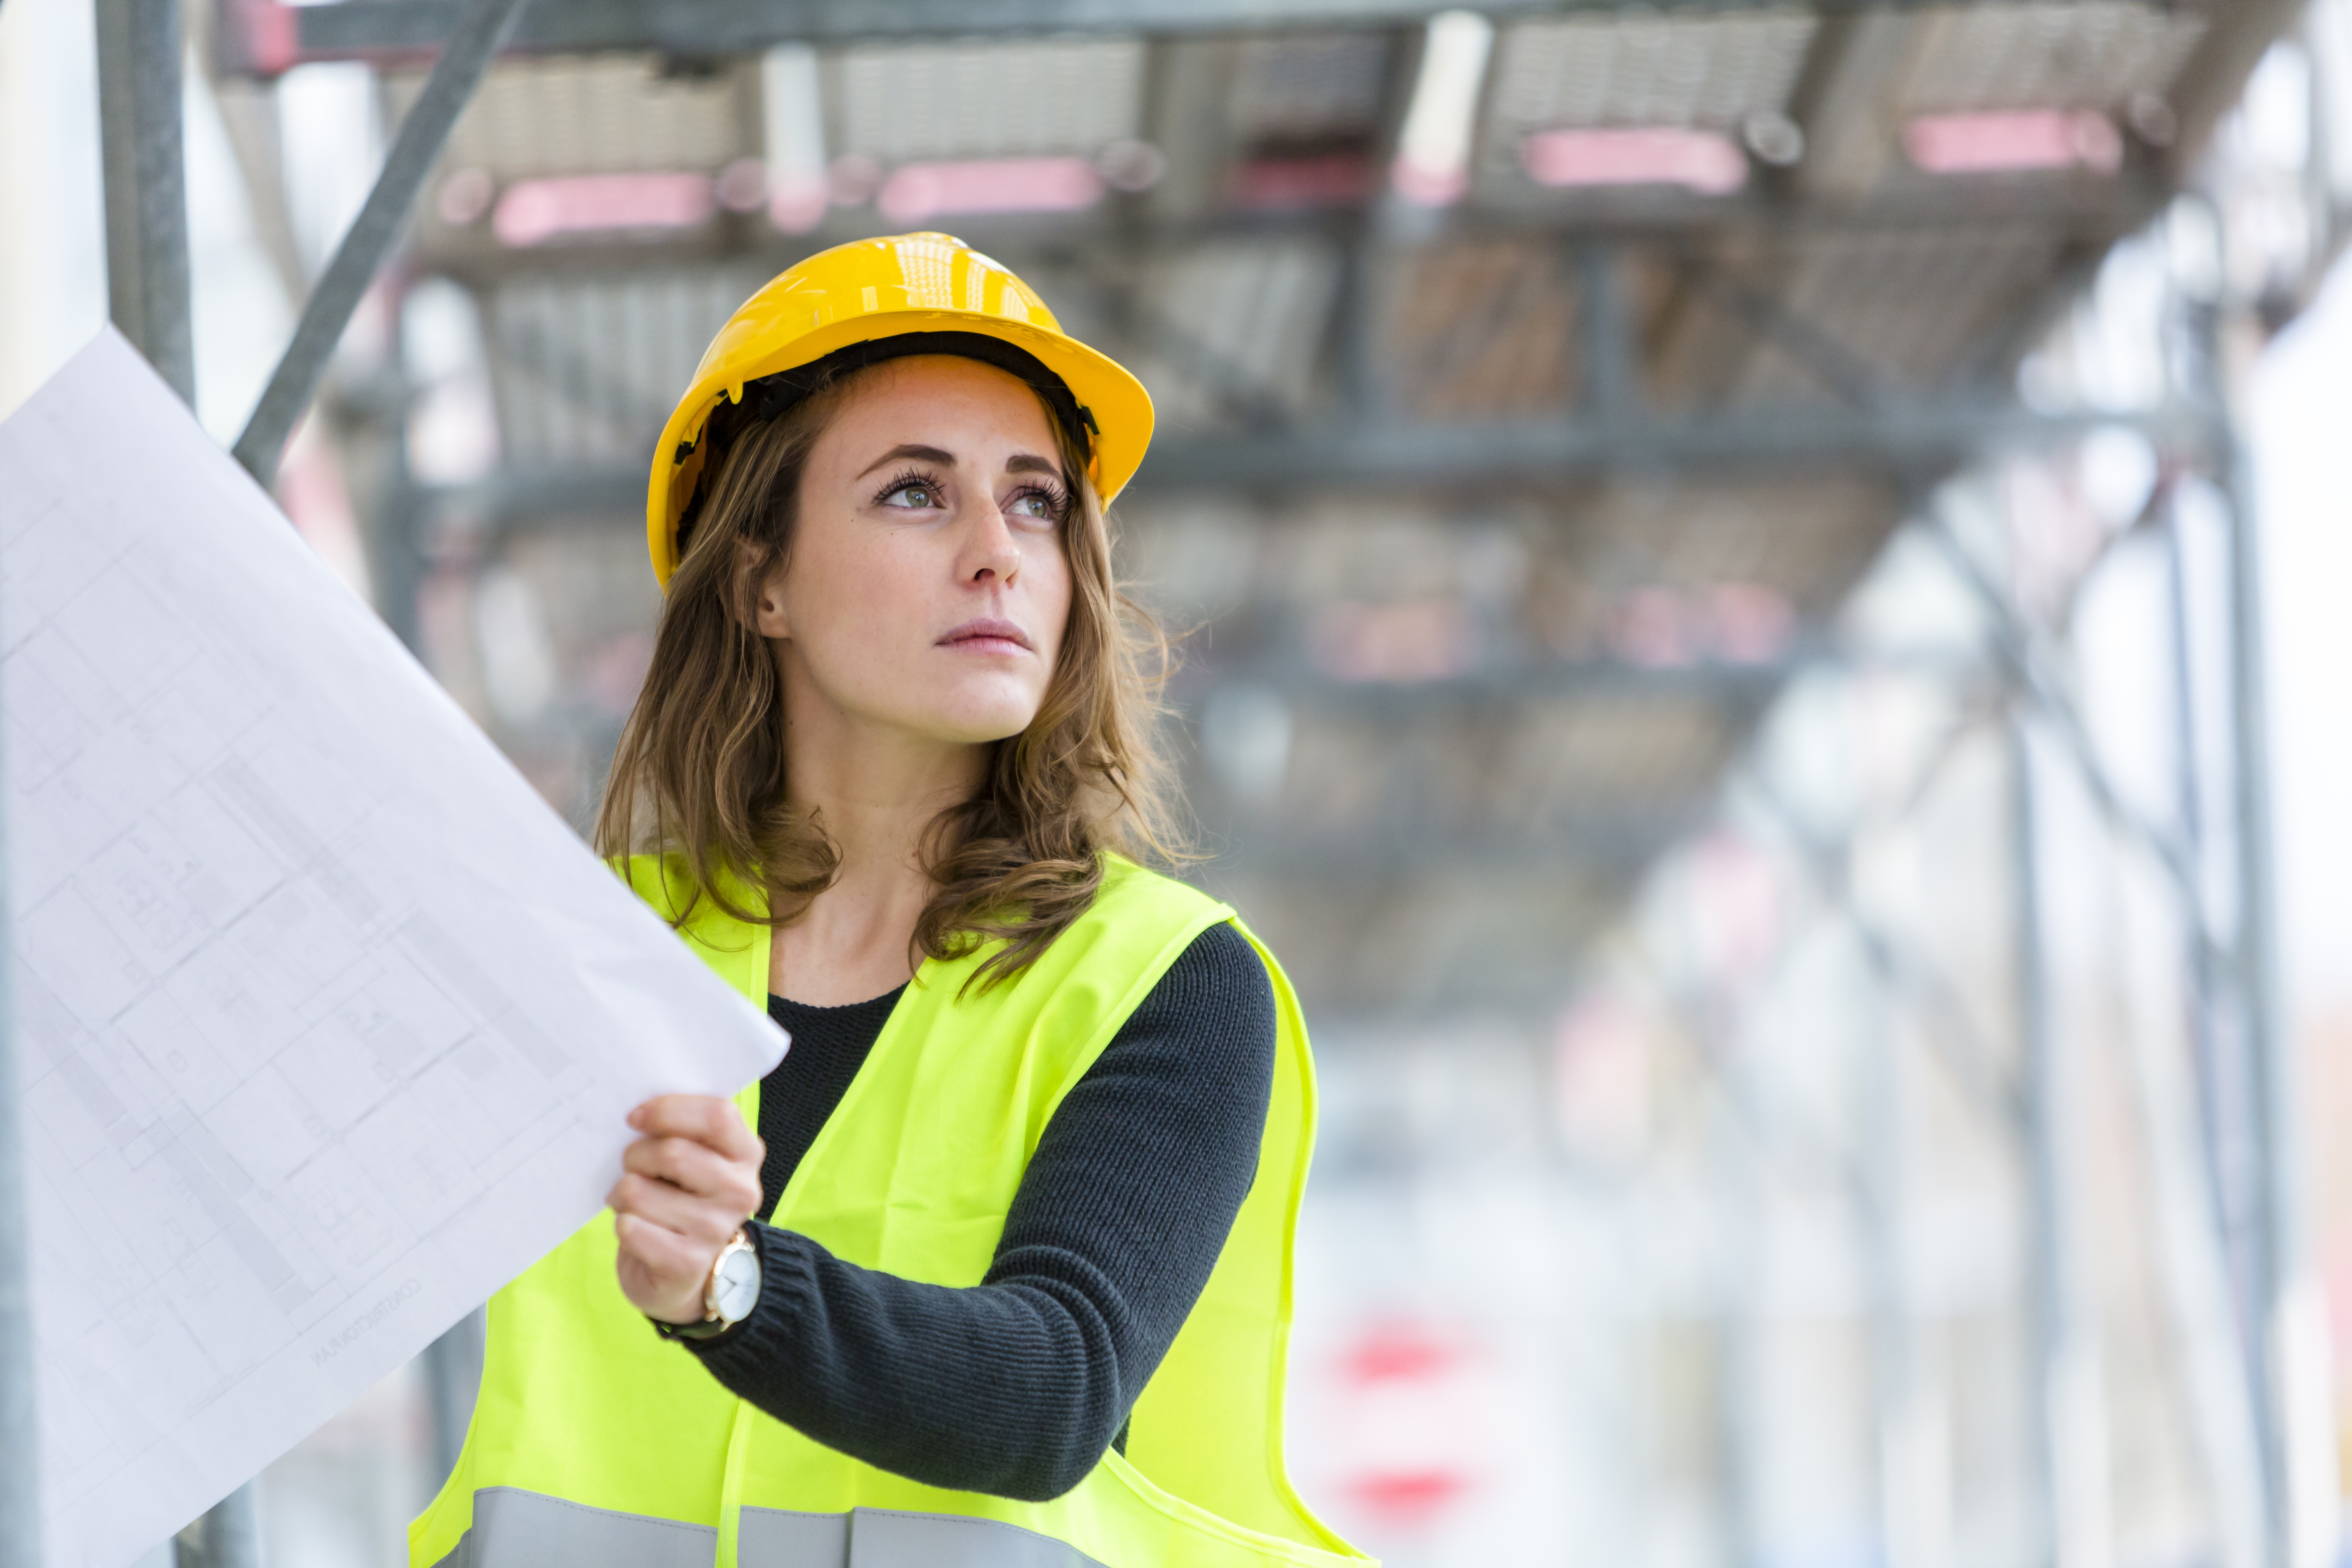 Woman on building site